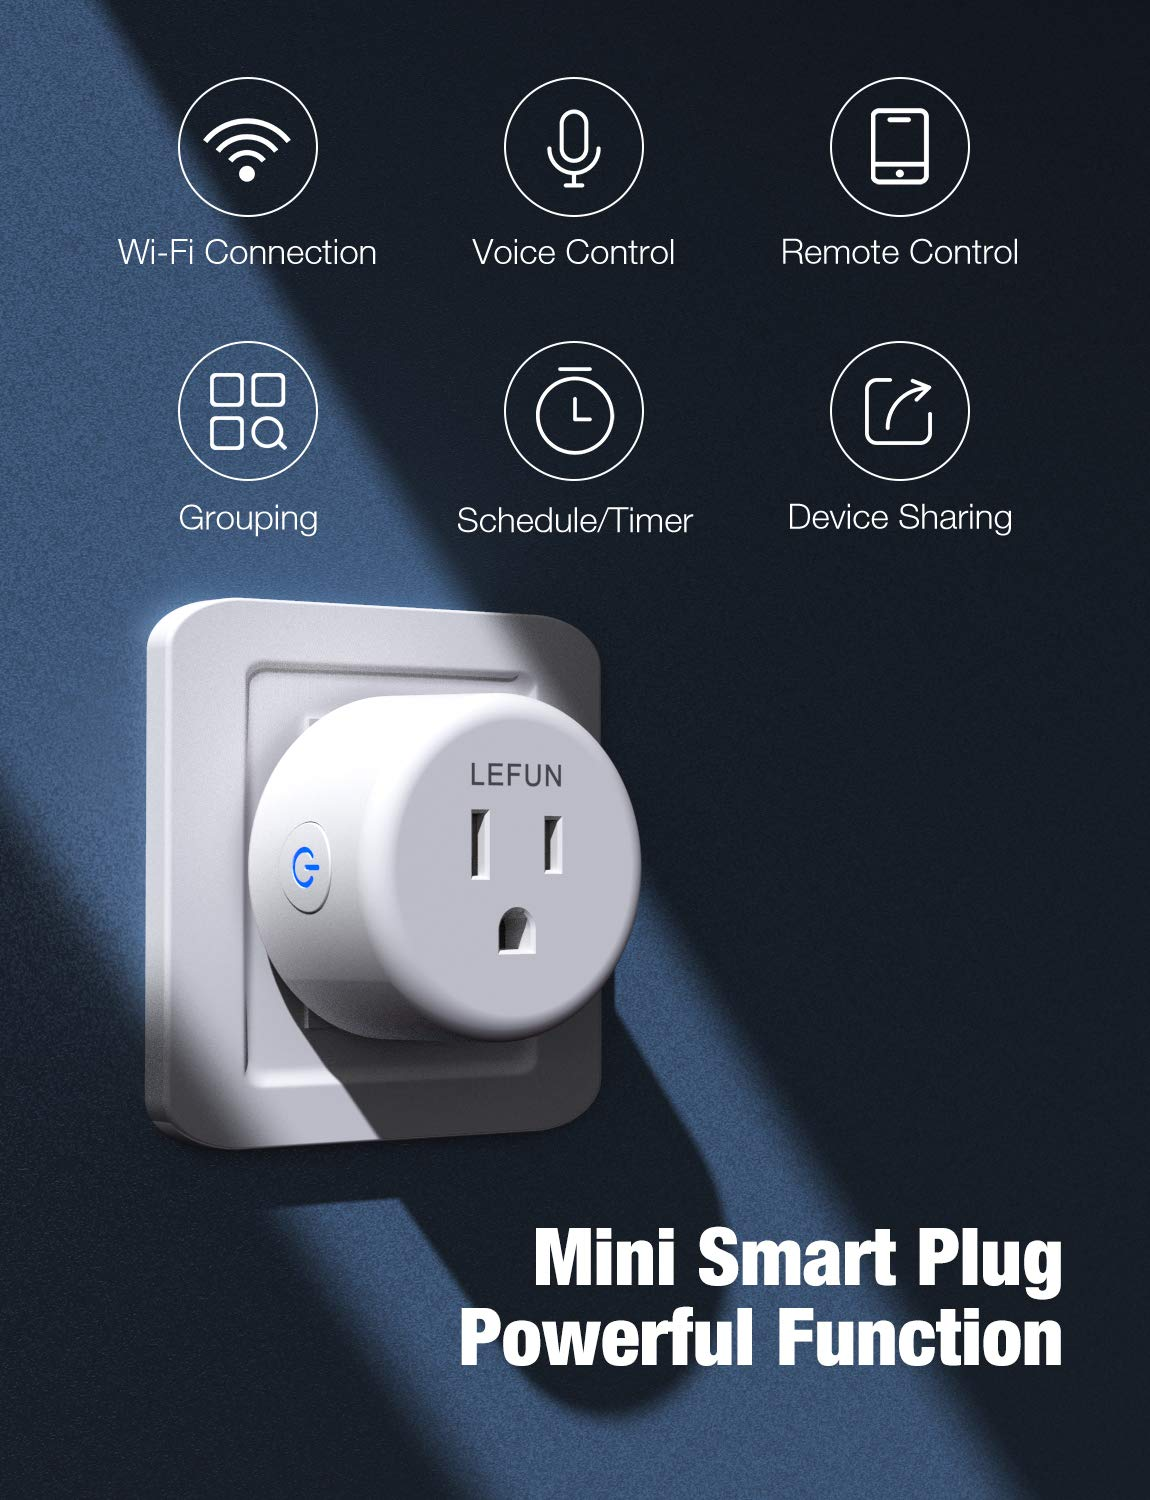 New Version Smart Plug, LeFun WiFi Outlet Grouping Control 4-Pack Compatible with Alexa Google Assistant and IFTTT, No Hub Required, App Remote Control Smart Outlet Plug Timer Schedules, FCC ETL